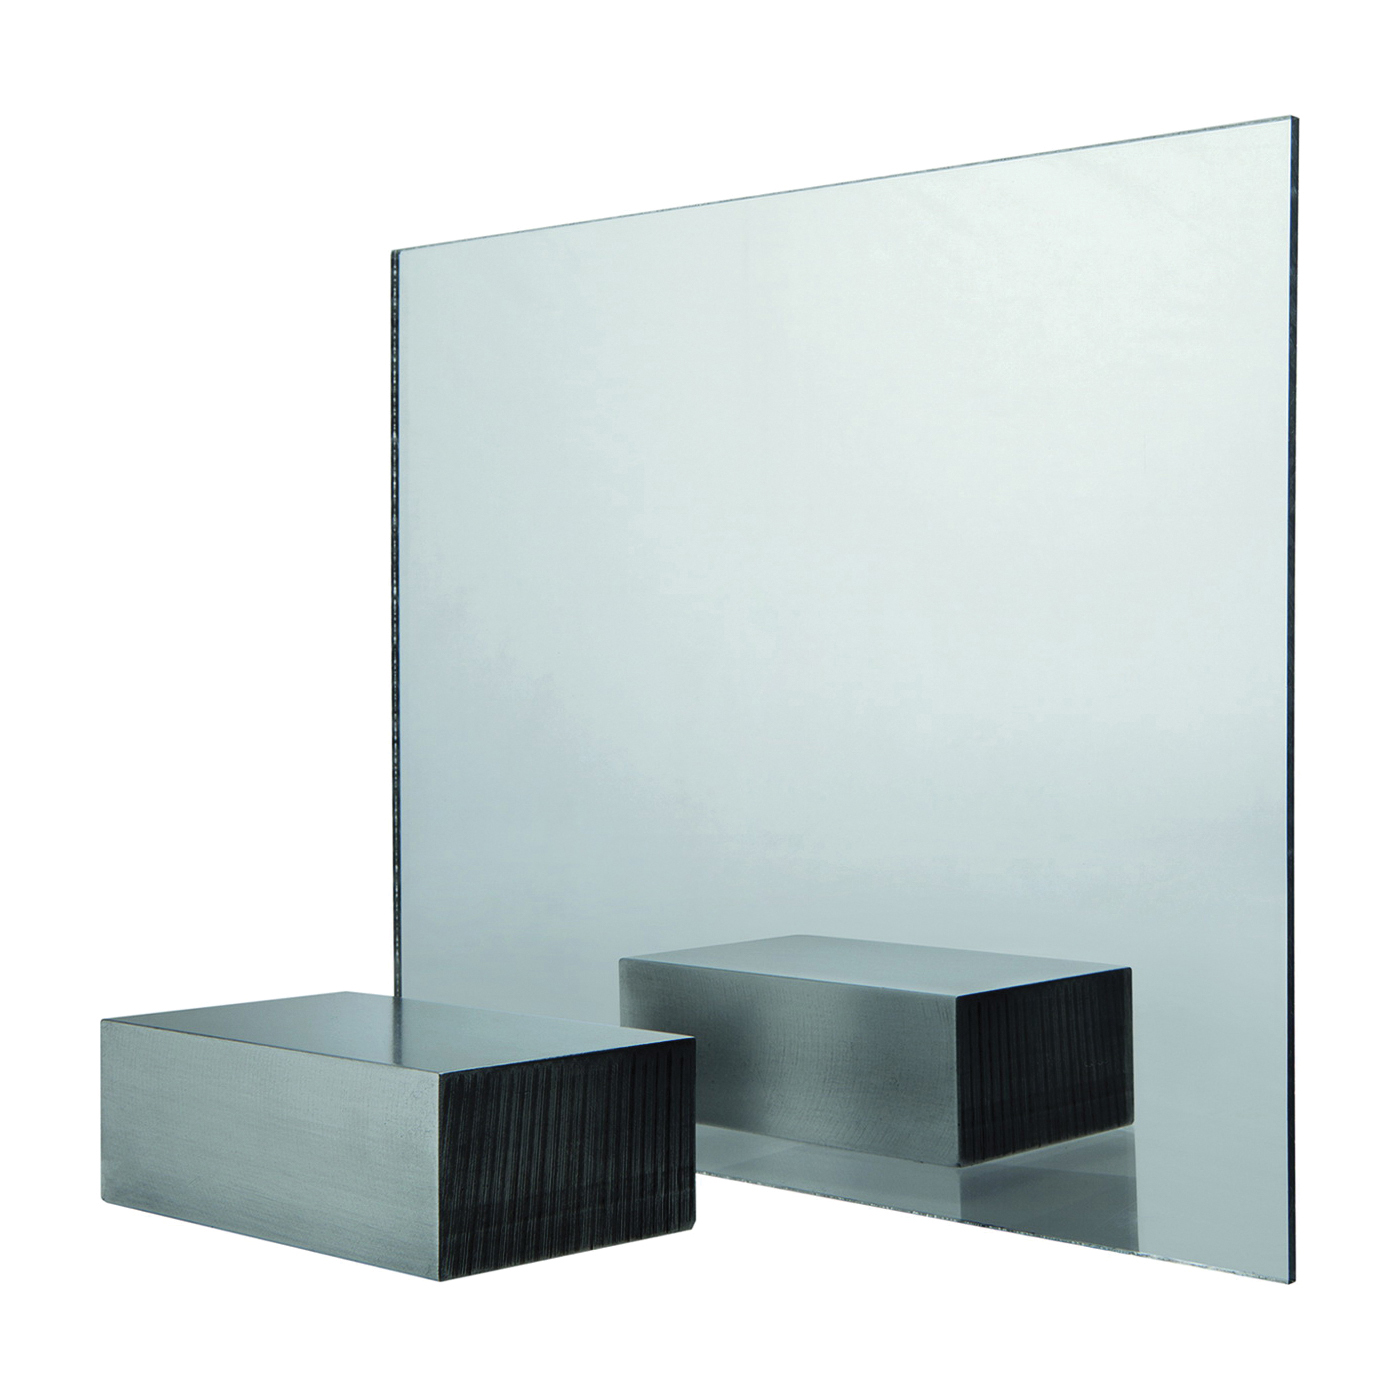 Picture of FABBACK CP10076M Acrylic Mirror, 47-3/4 in L, 23-3/4 in W